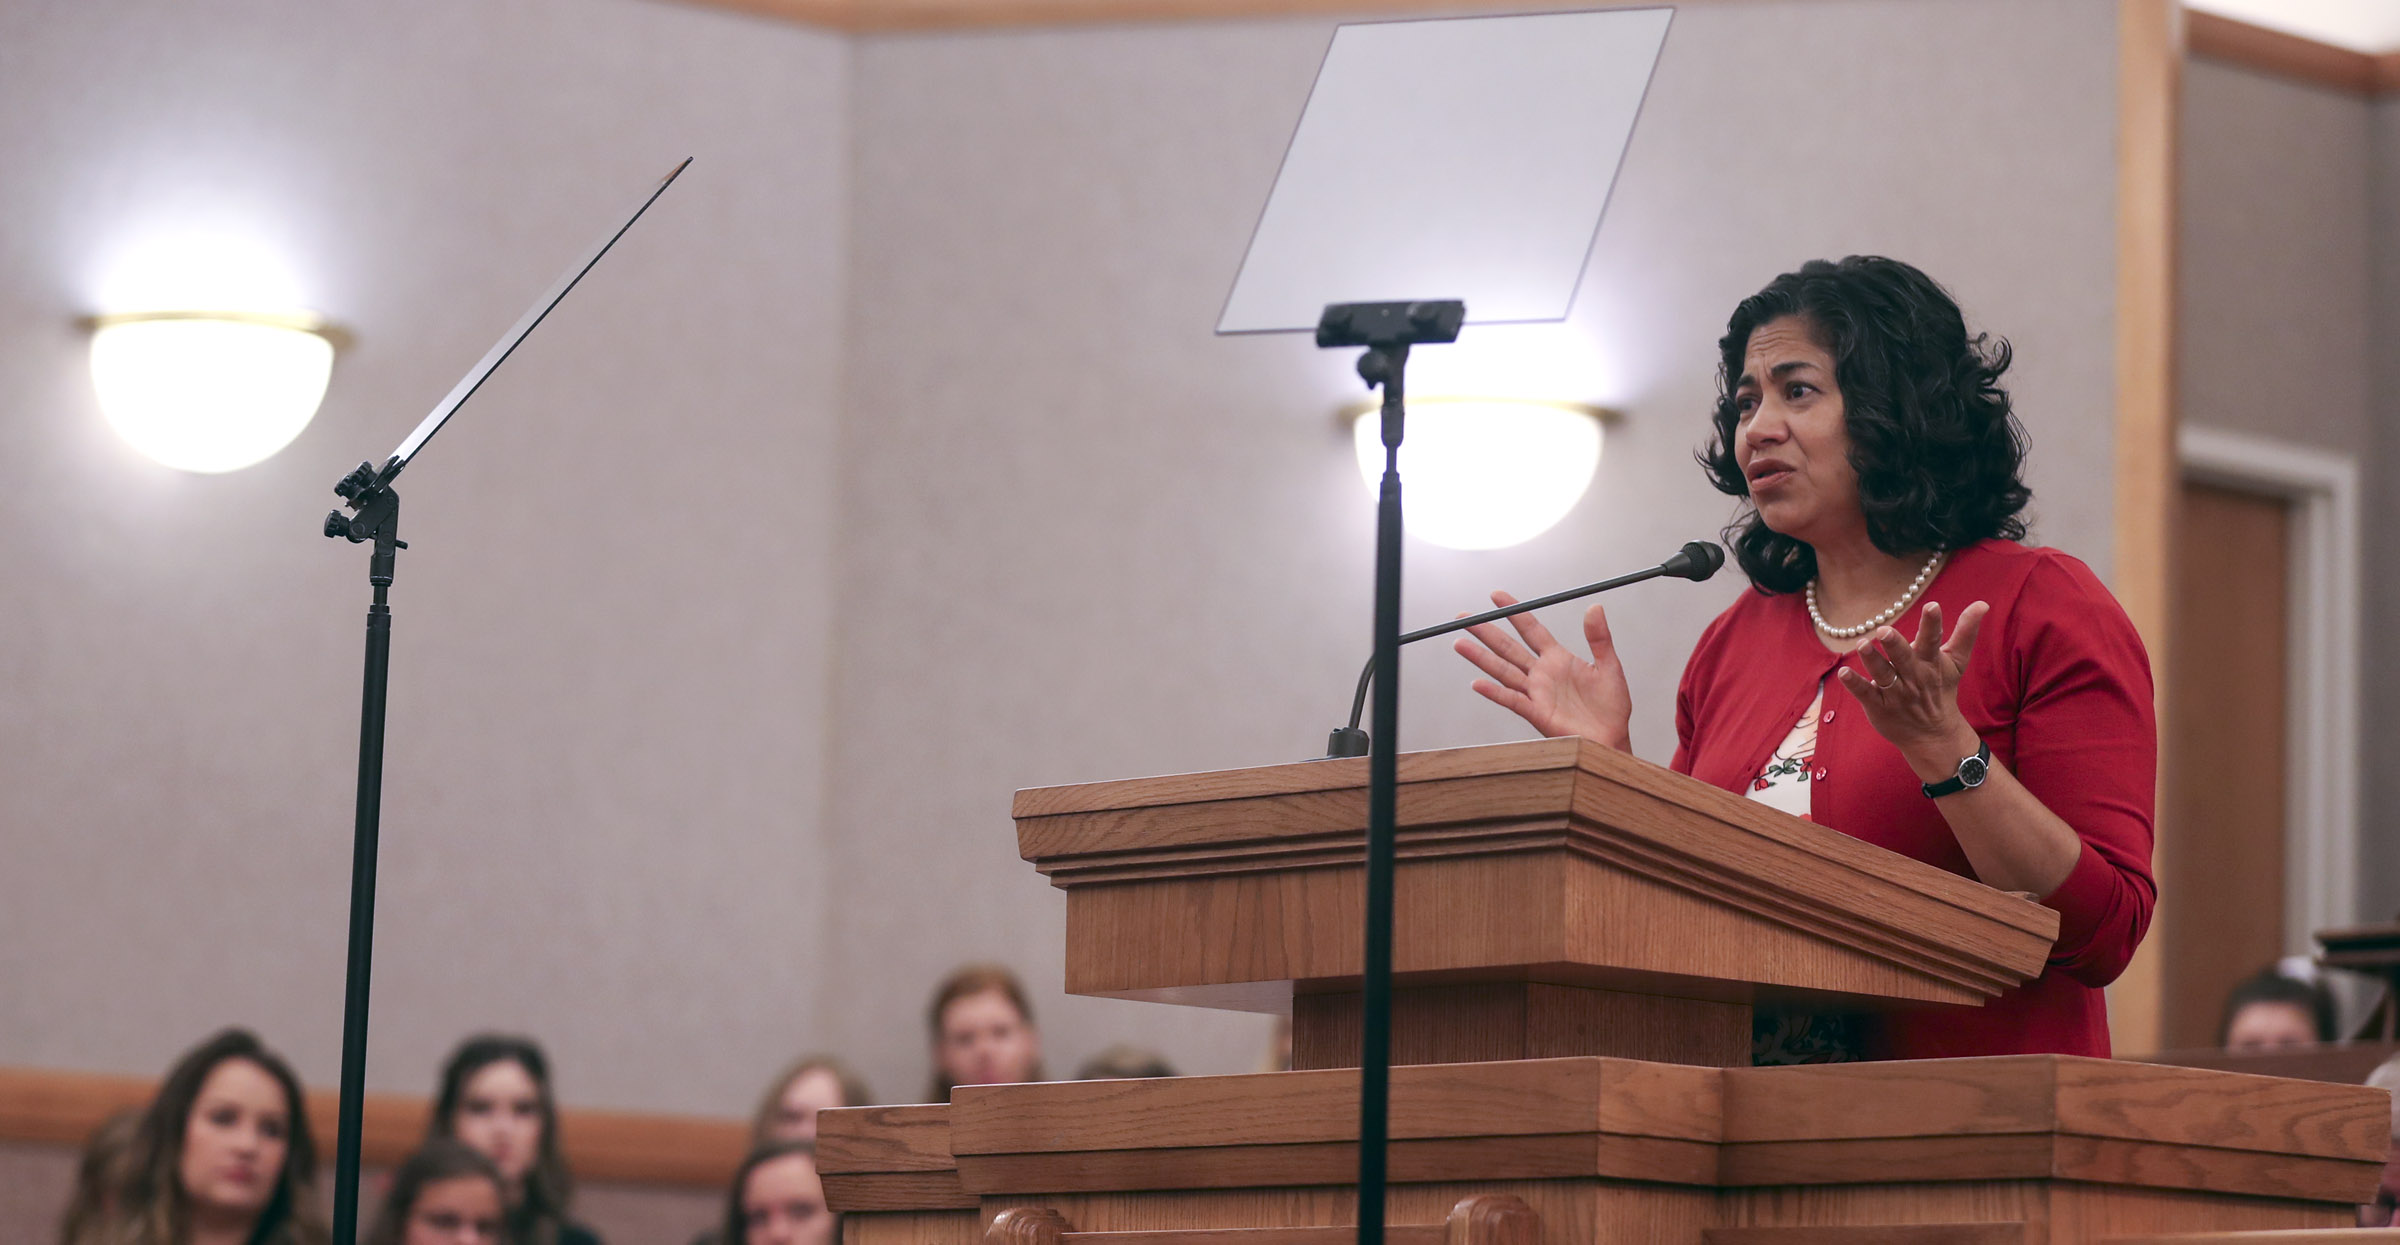 Sister Reyna I. Aburto, of the Relief Society general presidency speaks, during a Salt Lake Institute devotional at the LDS Institute of Religion in Salt Lake City on Thursday, Sept. 13, 2018.